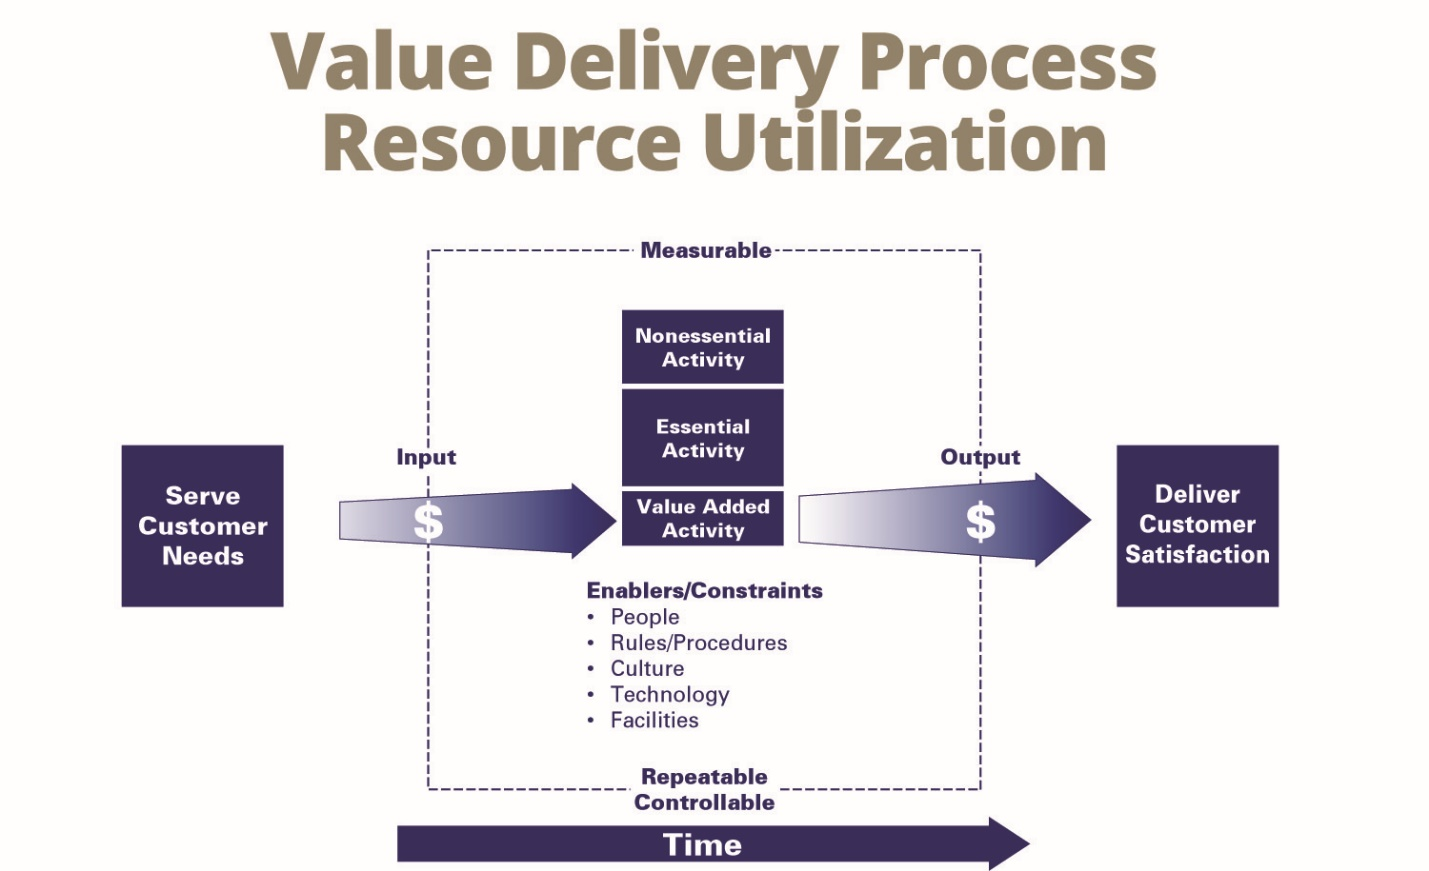 Simple flowchart of value delivery process resource utilization